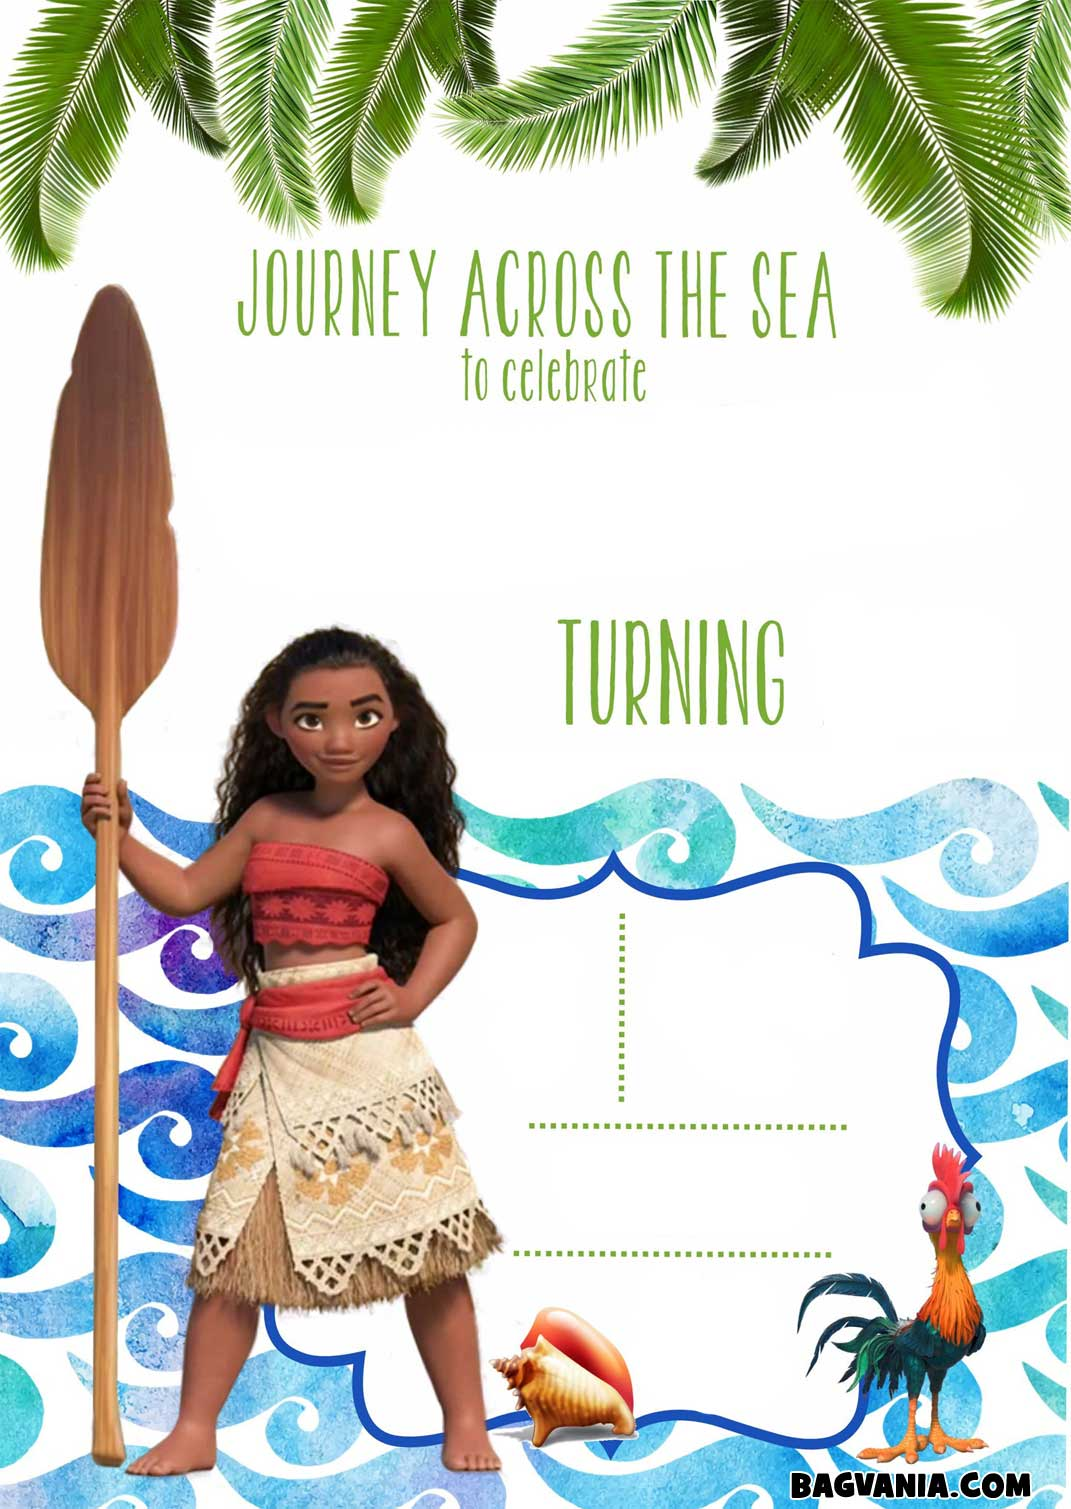 Intrepid image with regard to printable moana invitations